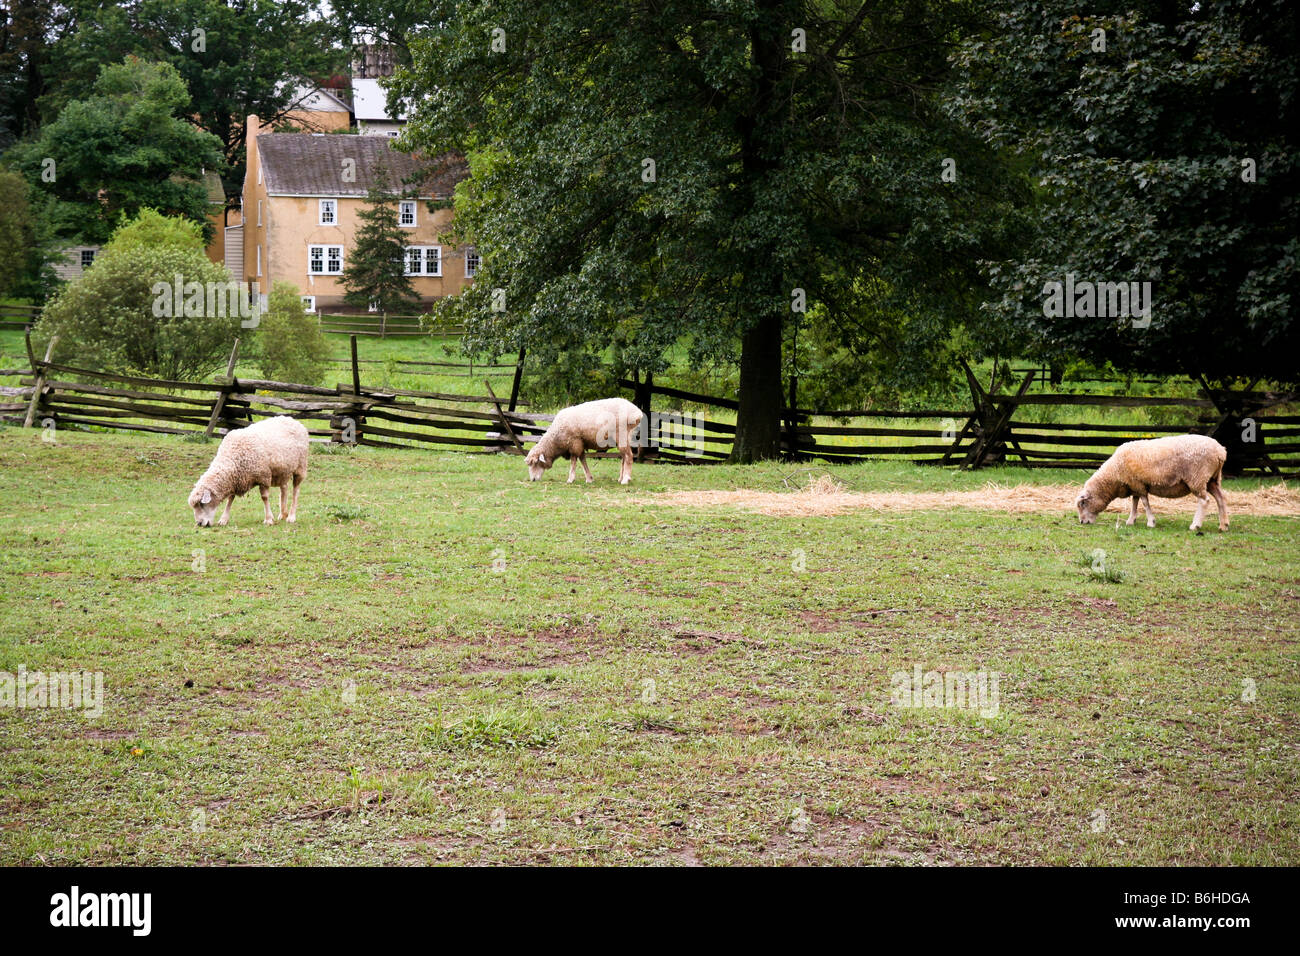 Three sheep grazing in a pastoral 18th century setting. - Stock Image